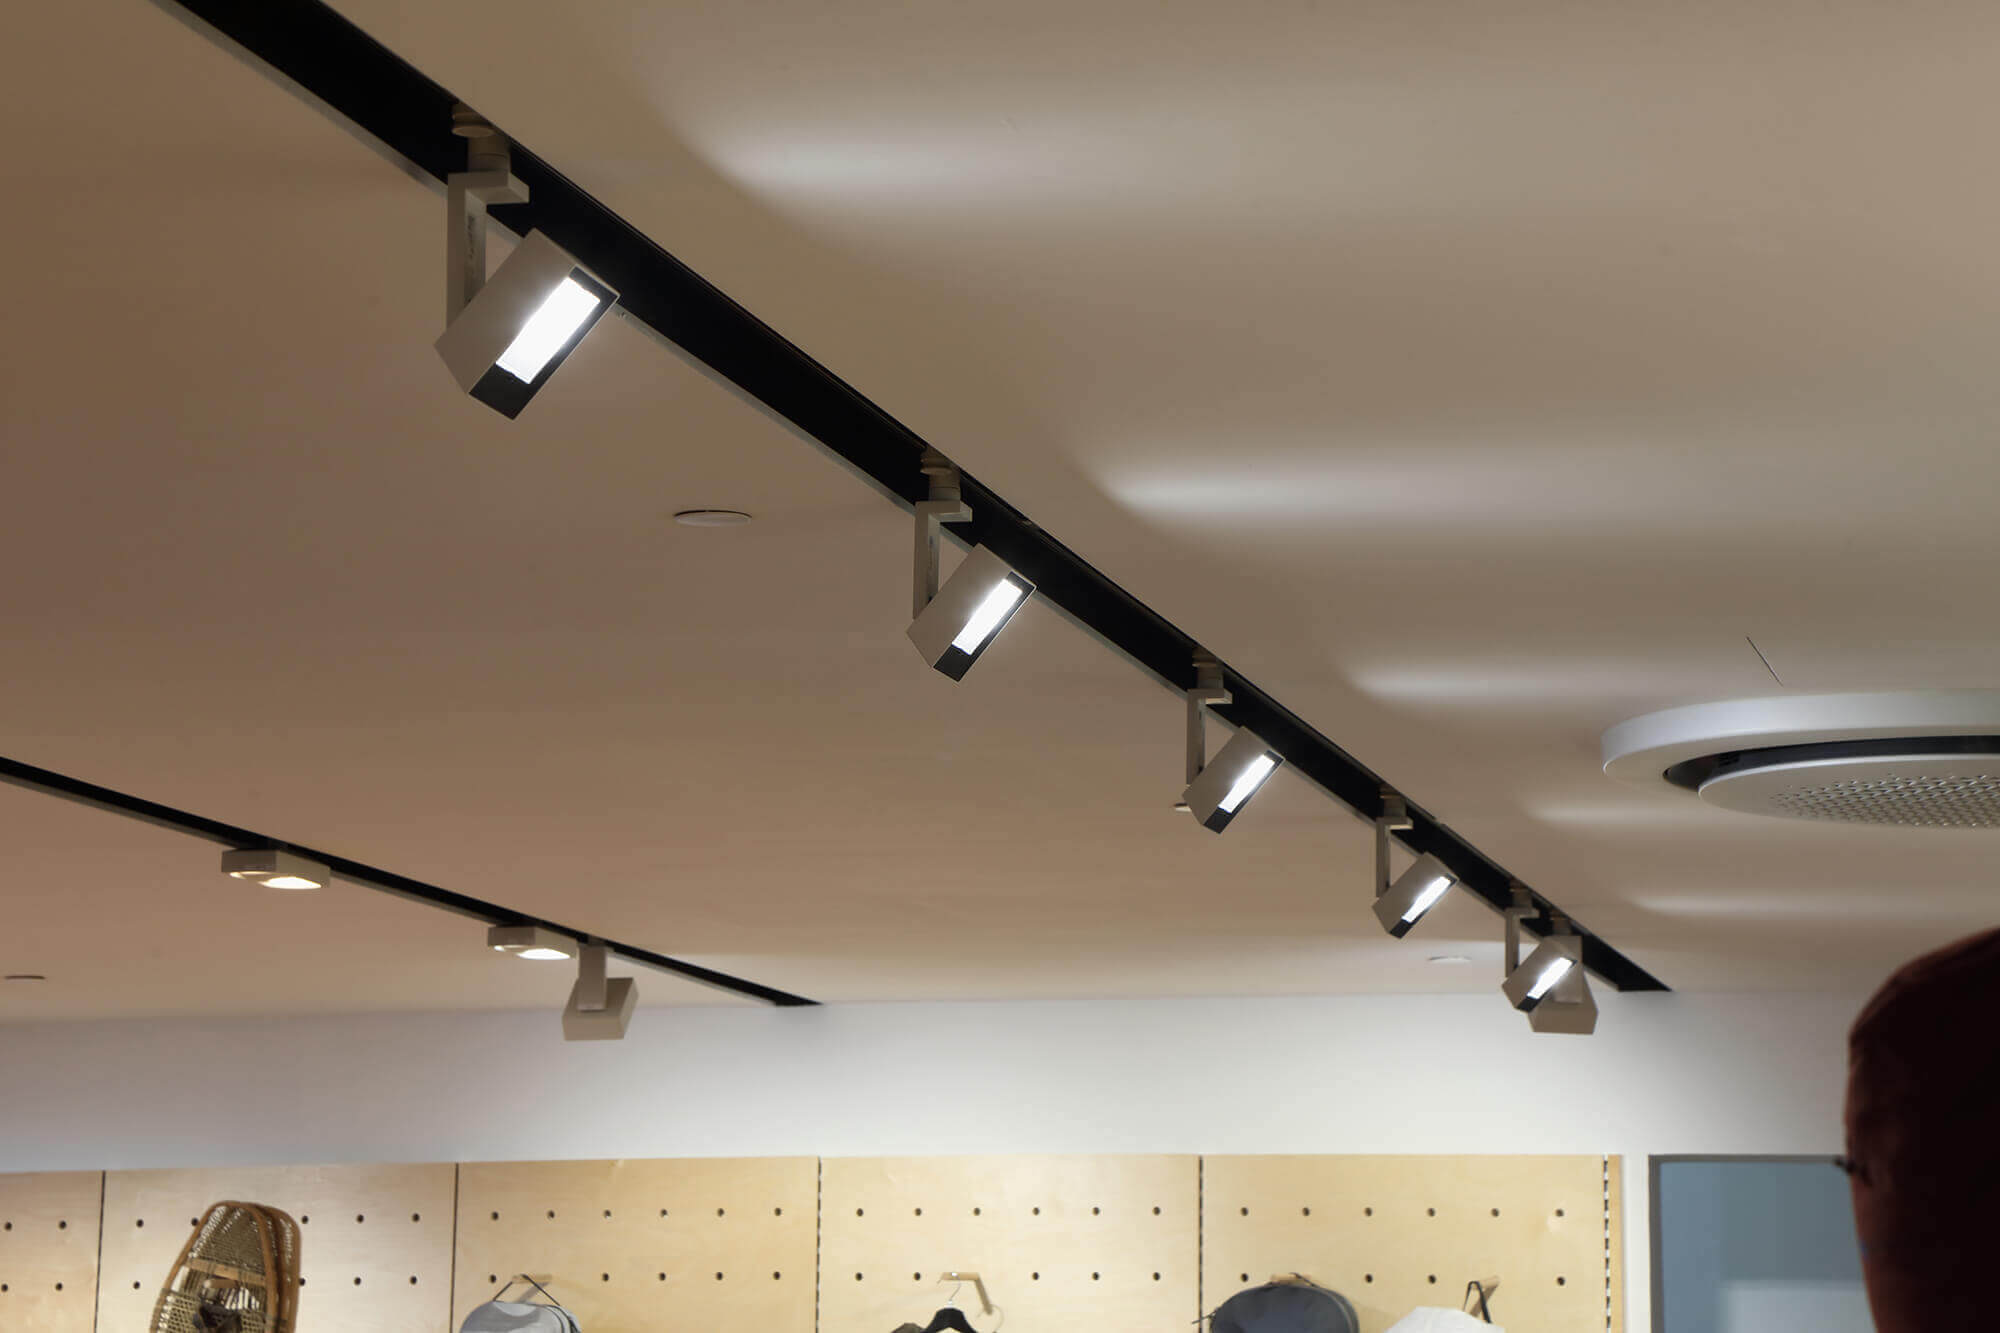 Ceiling light for retail project